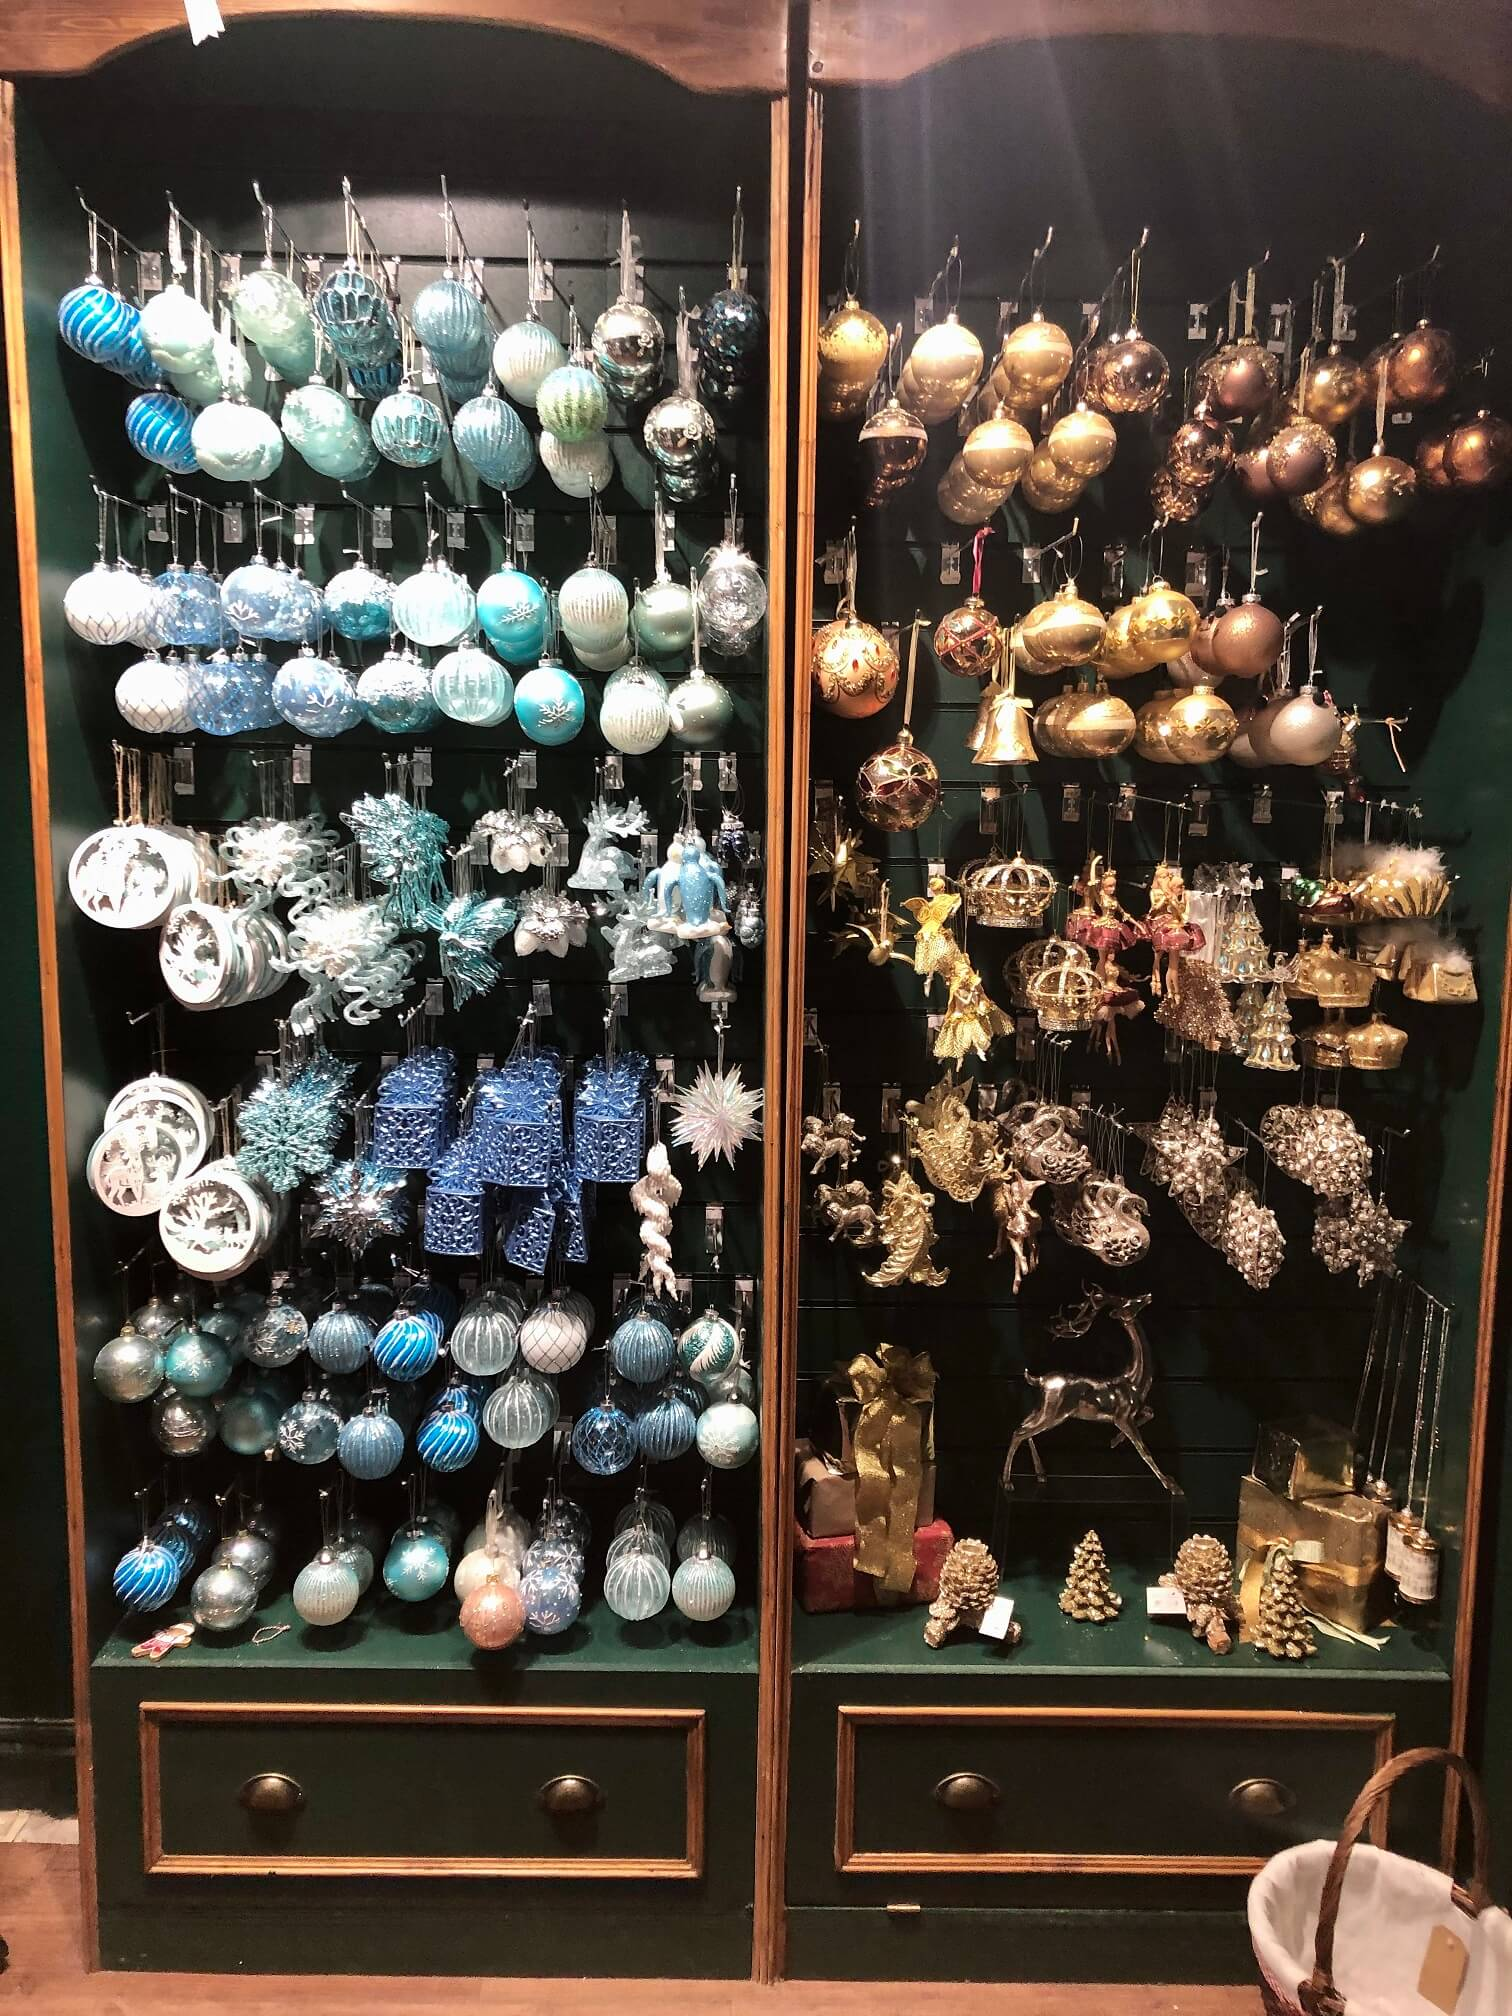 The Nutcracker Year Round Christmas Shop Blue & Gold Ornaments